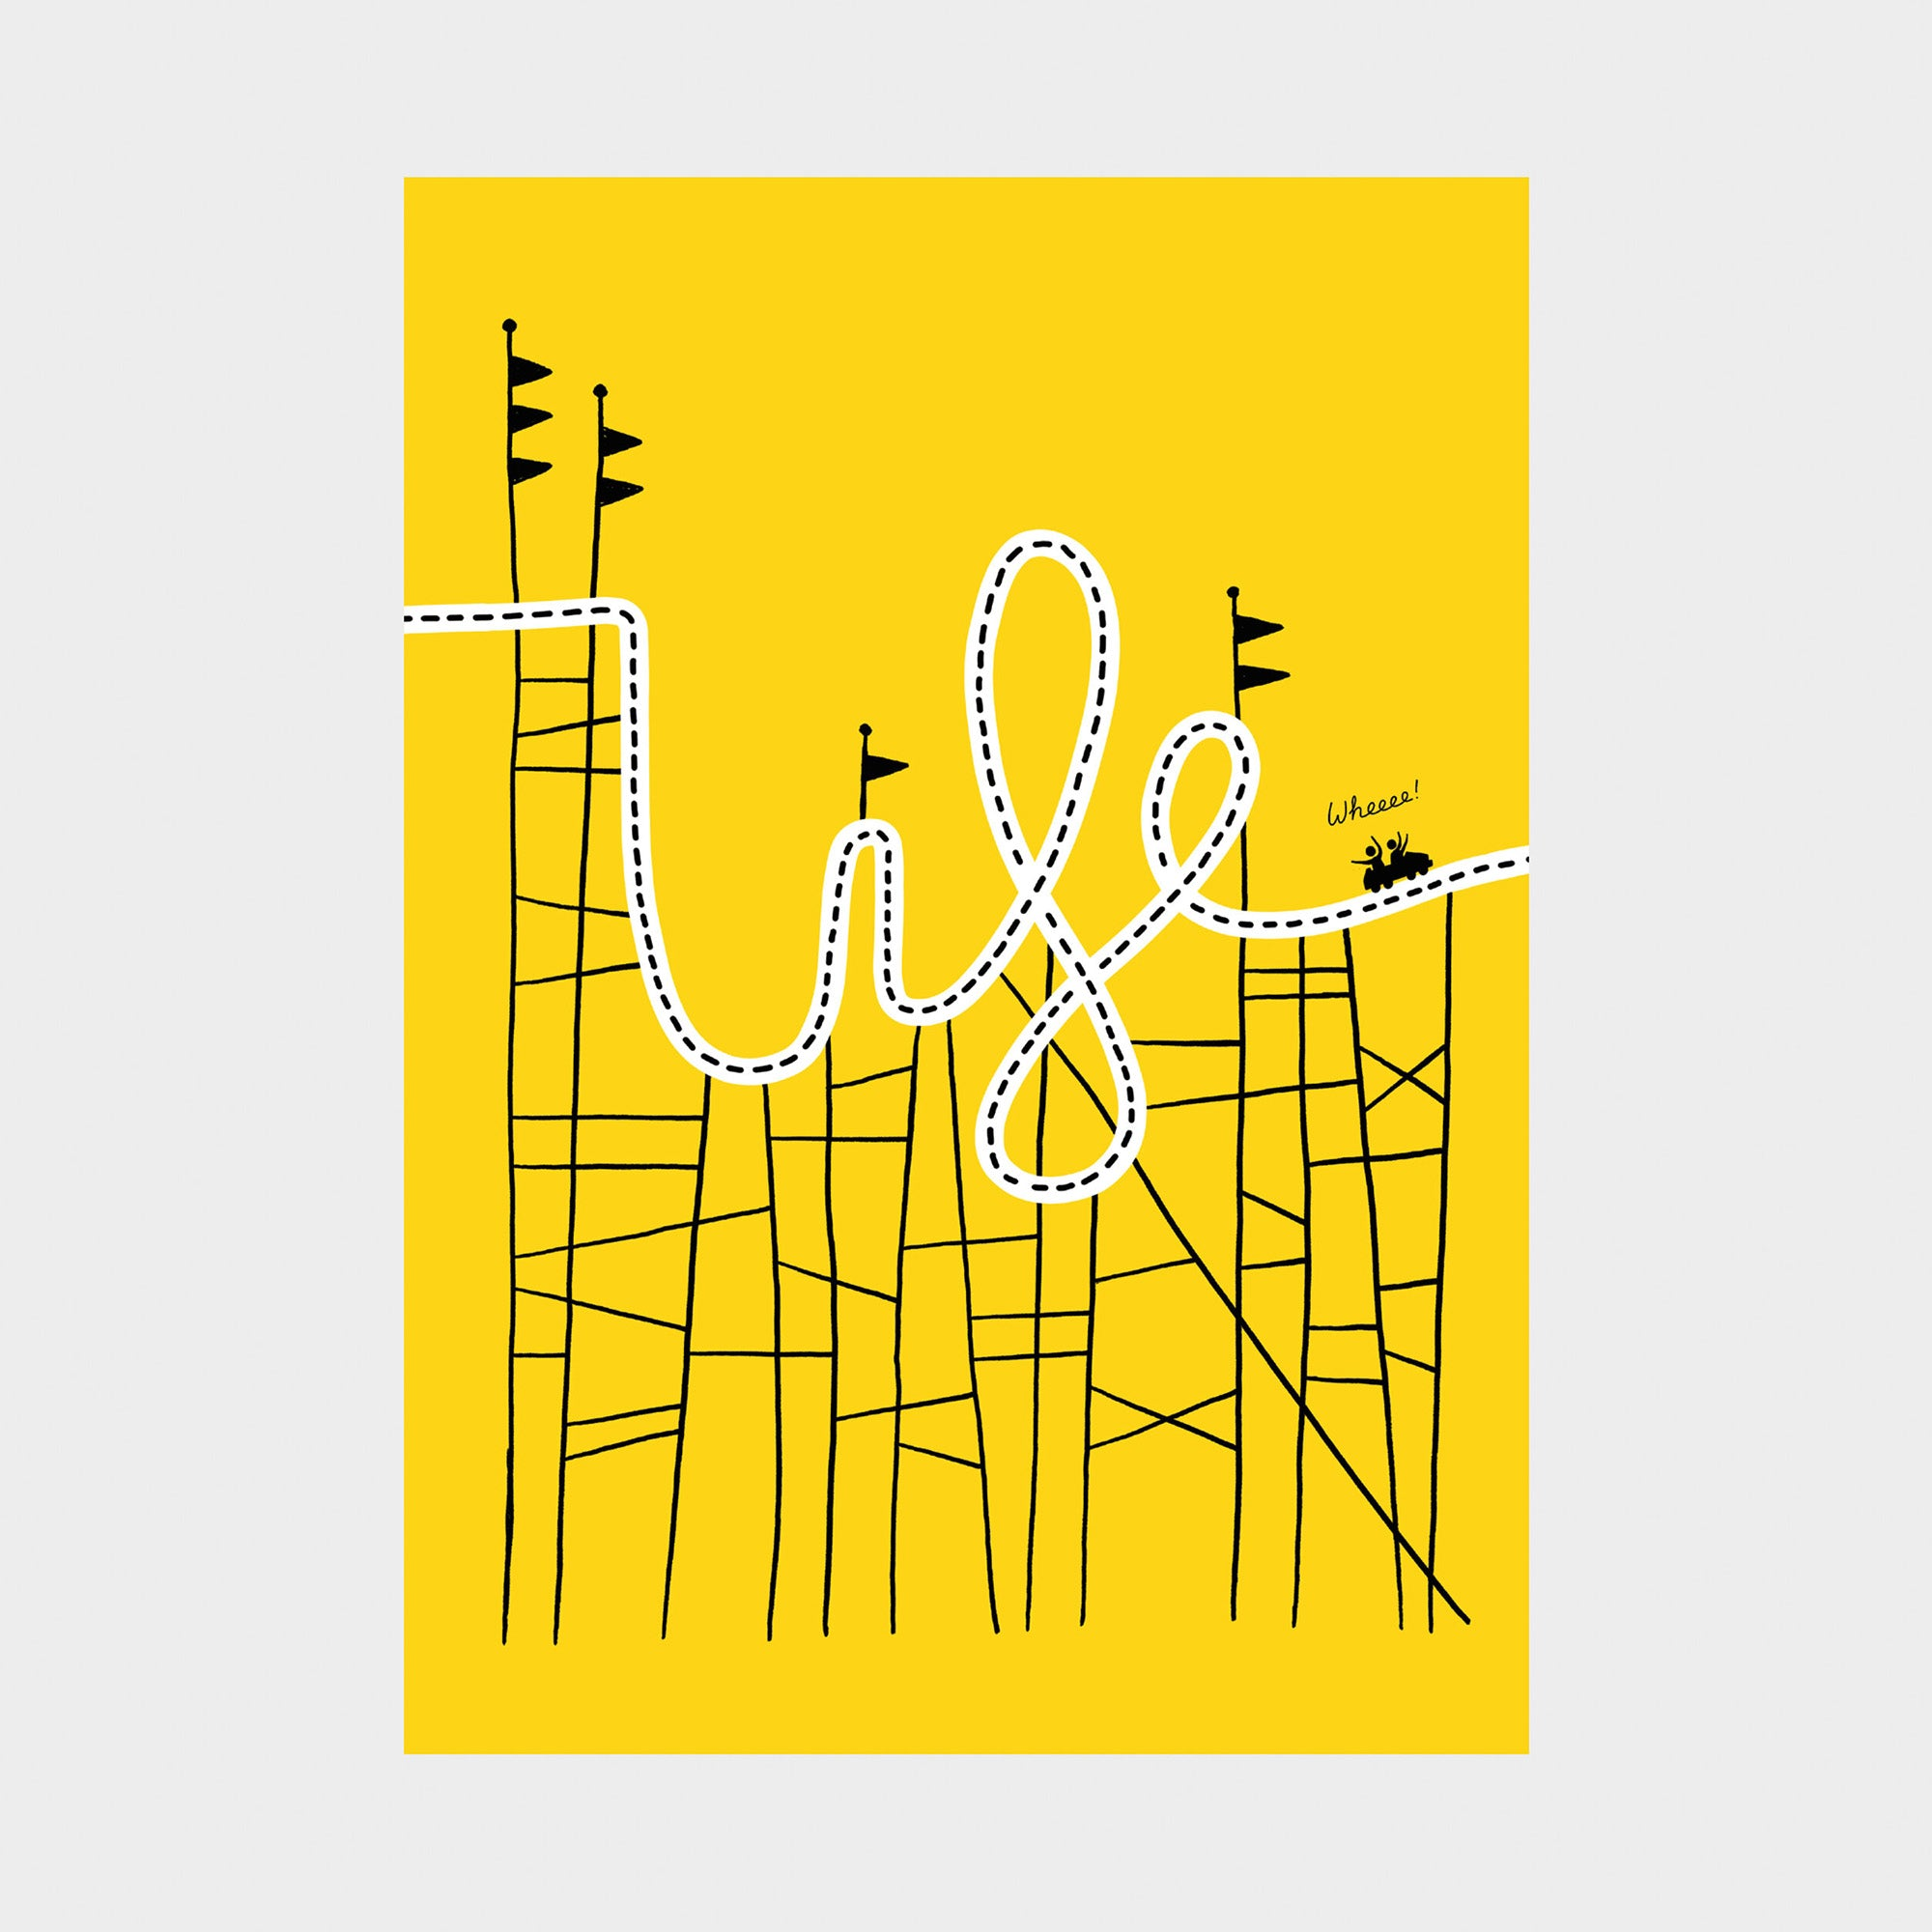 Life is a rollercoaster greetings card - Inspired